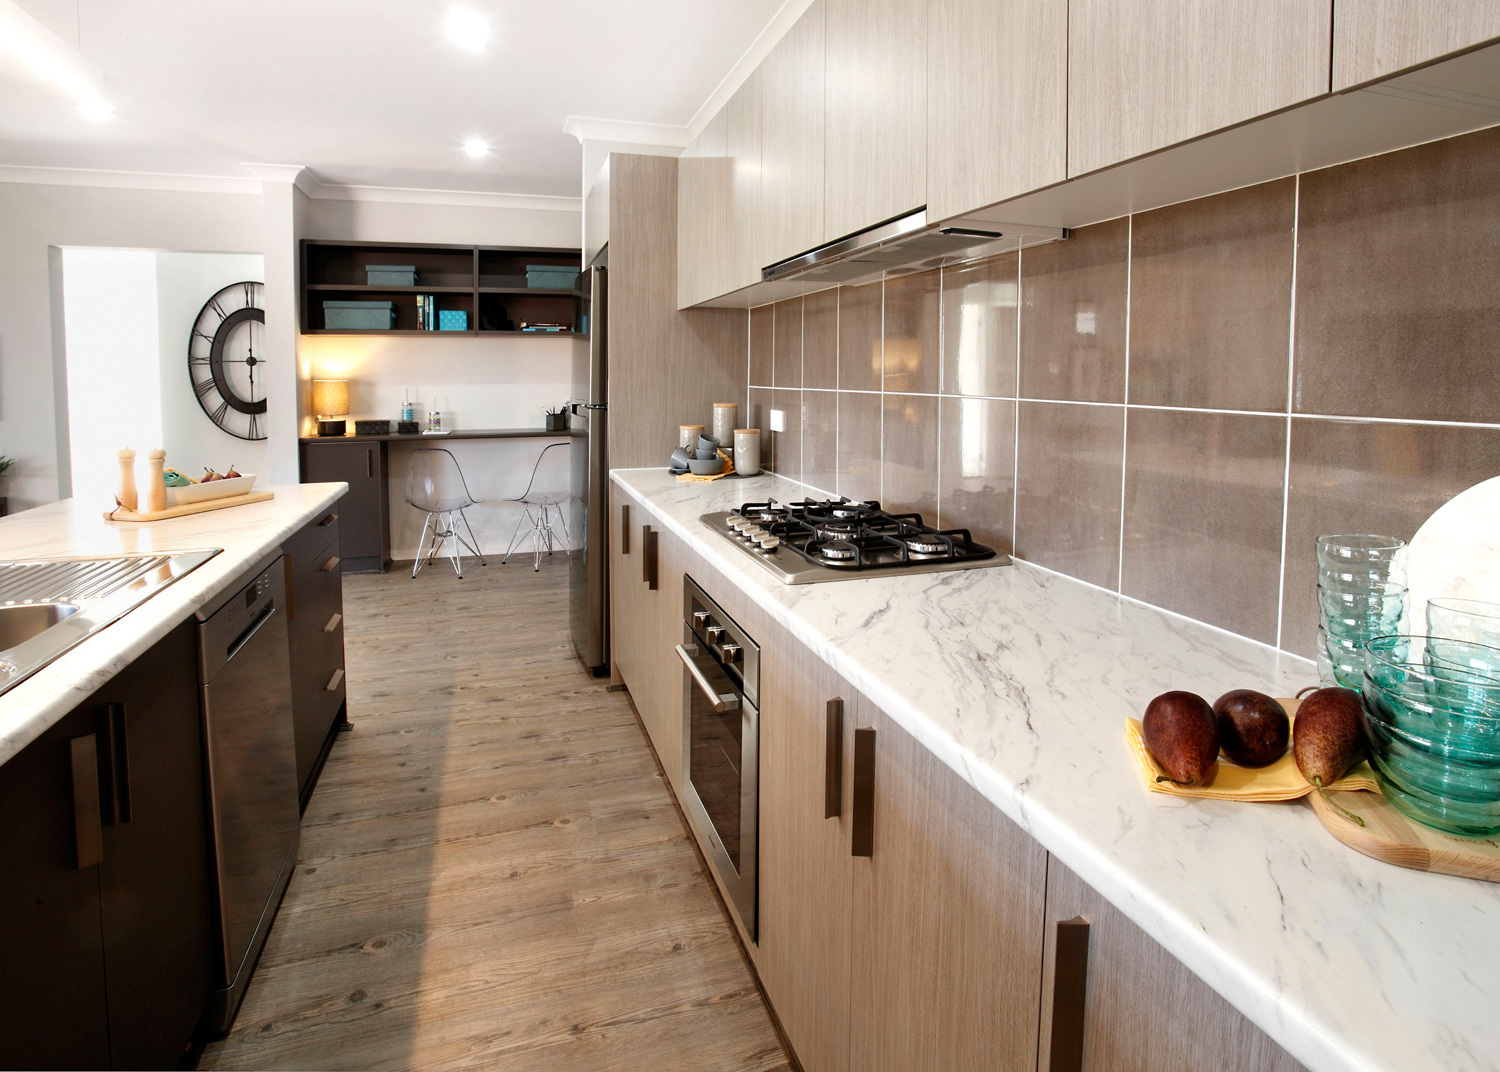 This re-build home is an example of the great designs you can expect from Jandson Homes